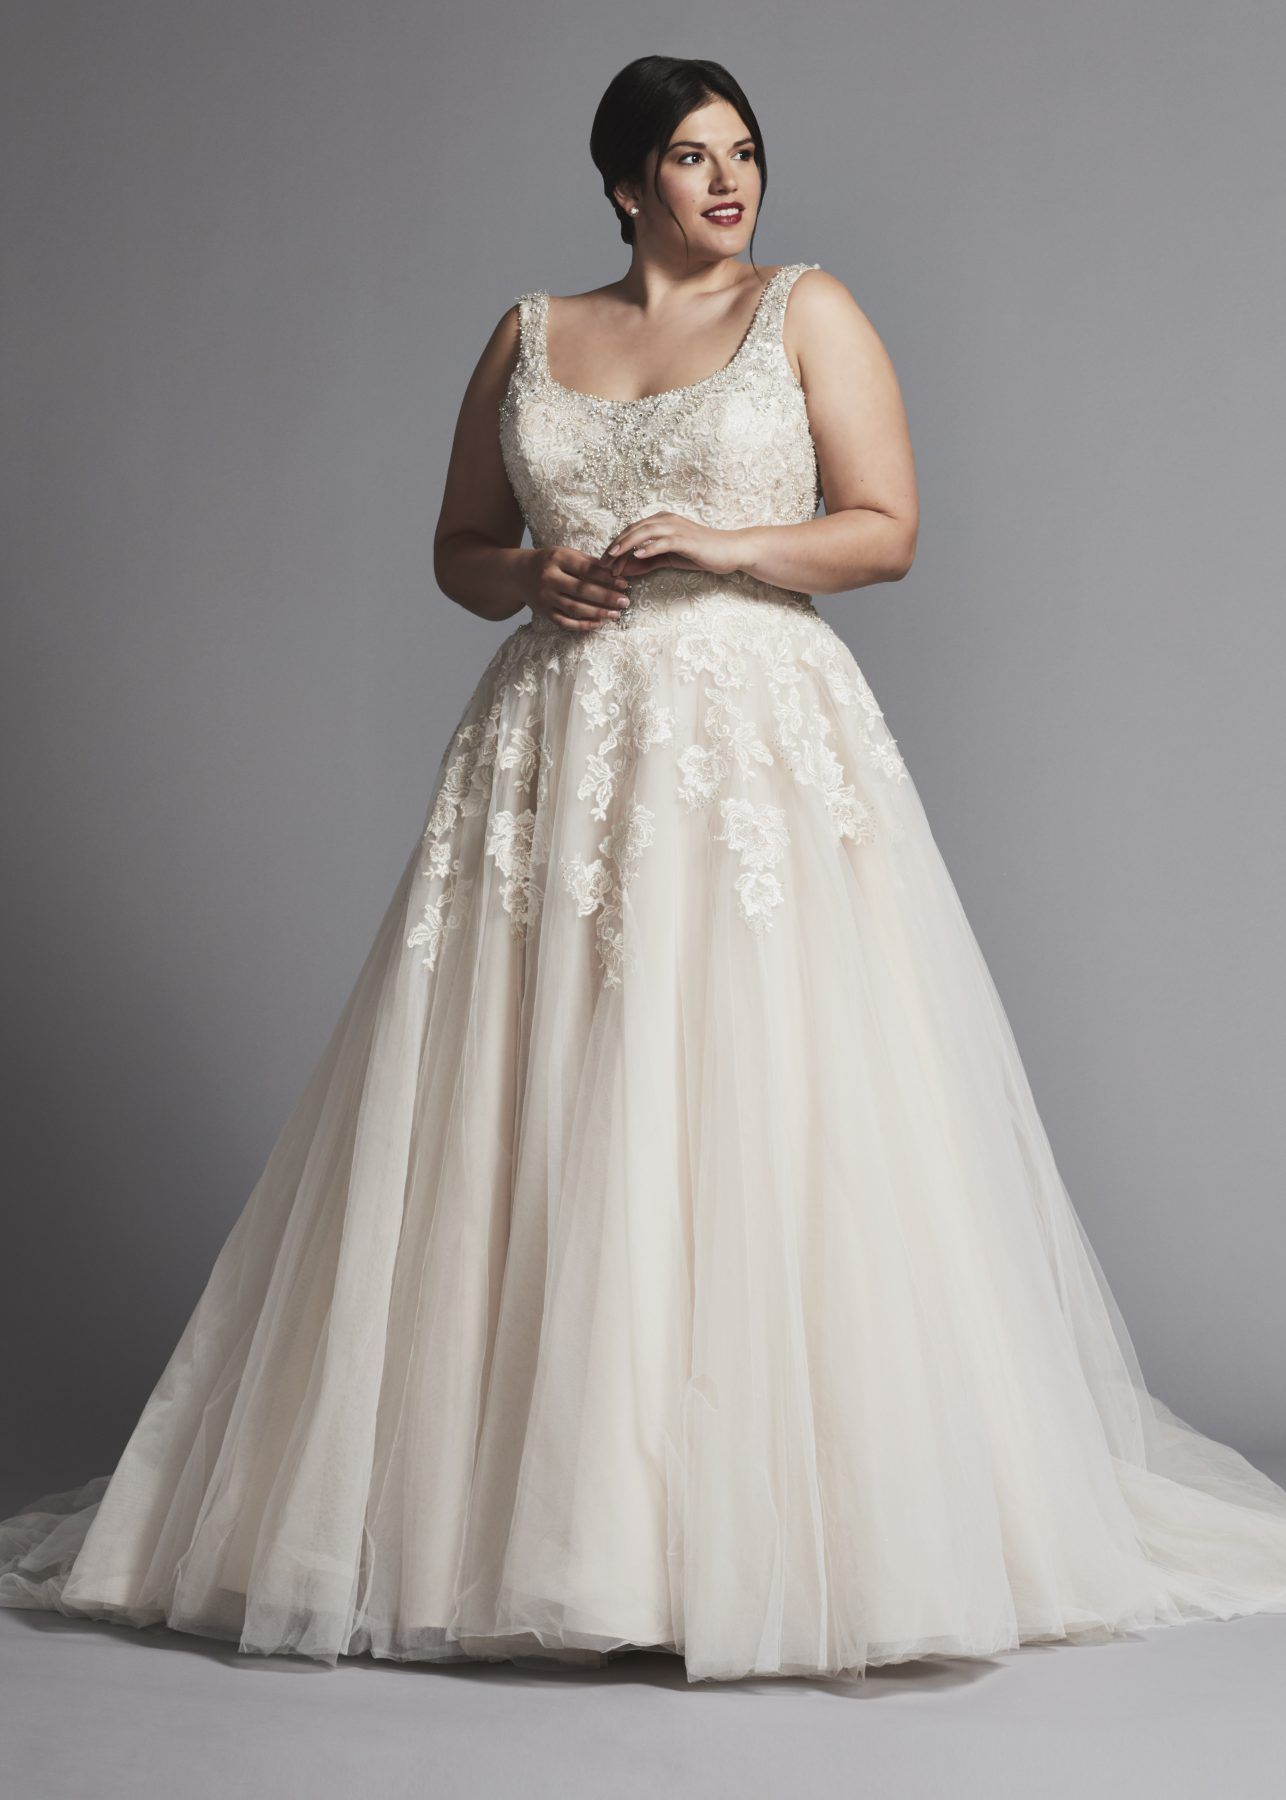 Beaded And Lace Bodice Scoop Neck With A Line Tulle Skirt Wedding Dress Danielle Wedding Dresses Kleinfeld Tulle Skirt Wedding Dress Plus Size Wedding Gowns